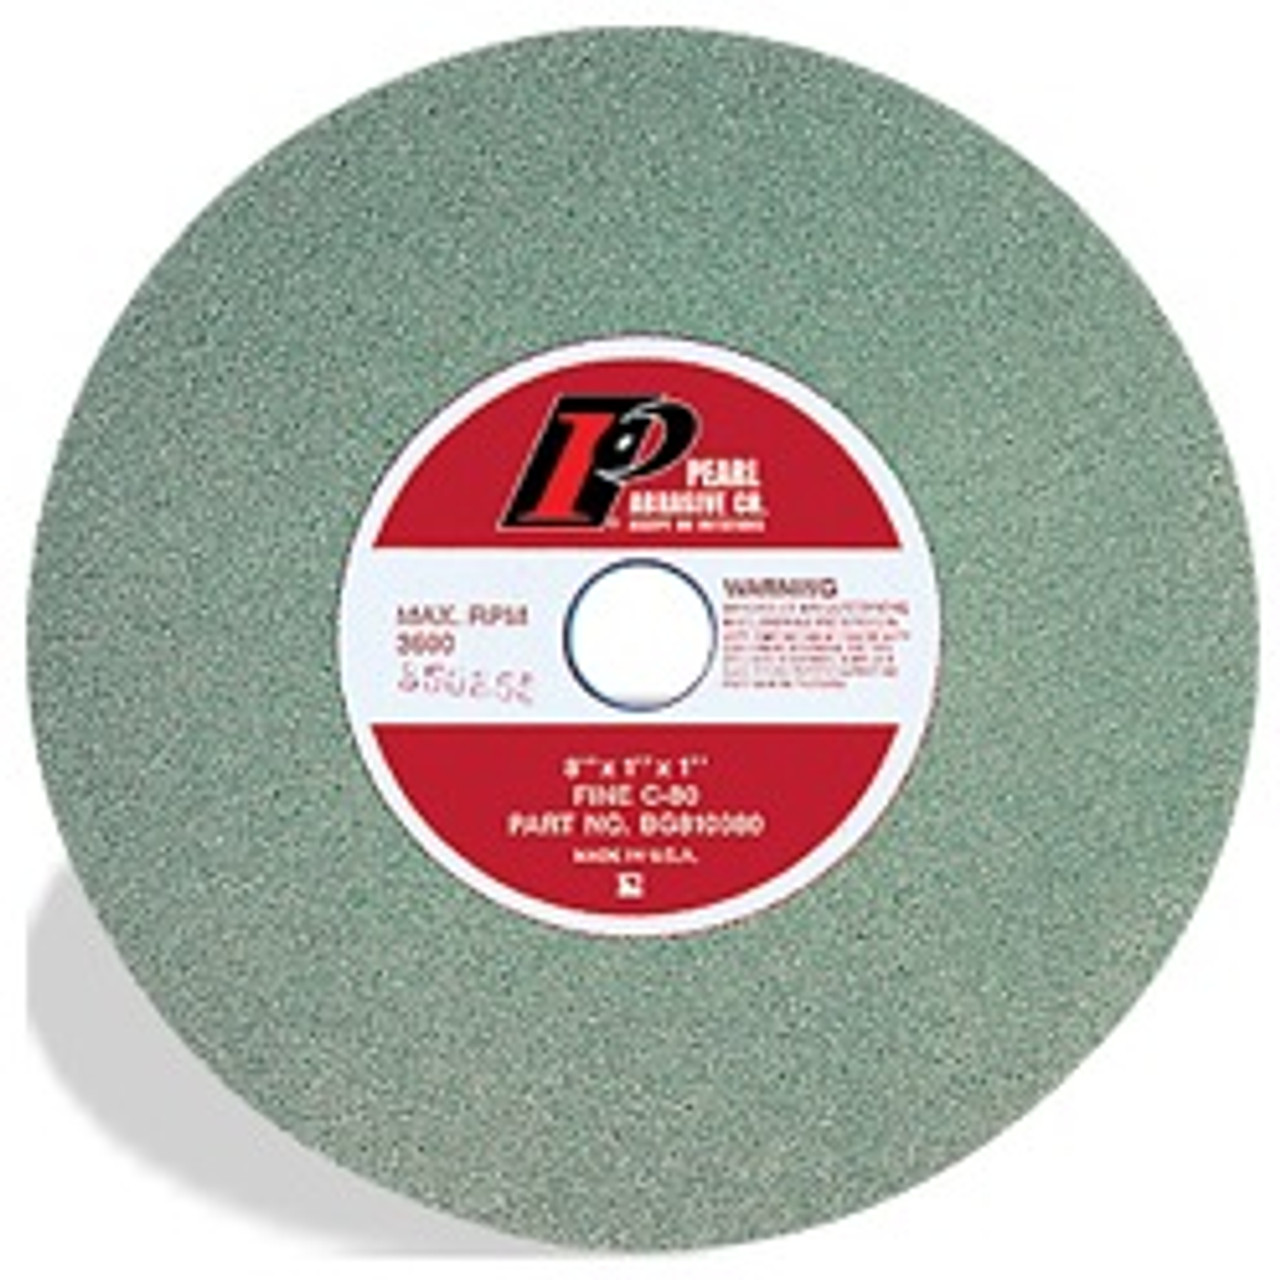 "Green SC Bench Grinding Wheels for Metal, 6"" x 3/4"" x 1"", Type 1 Shape C120"